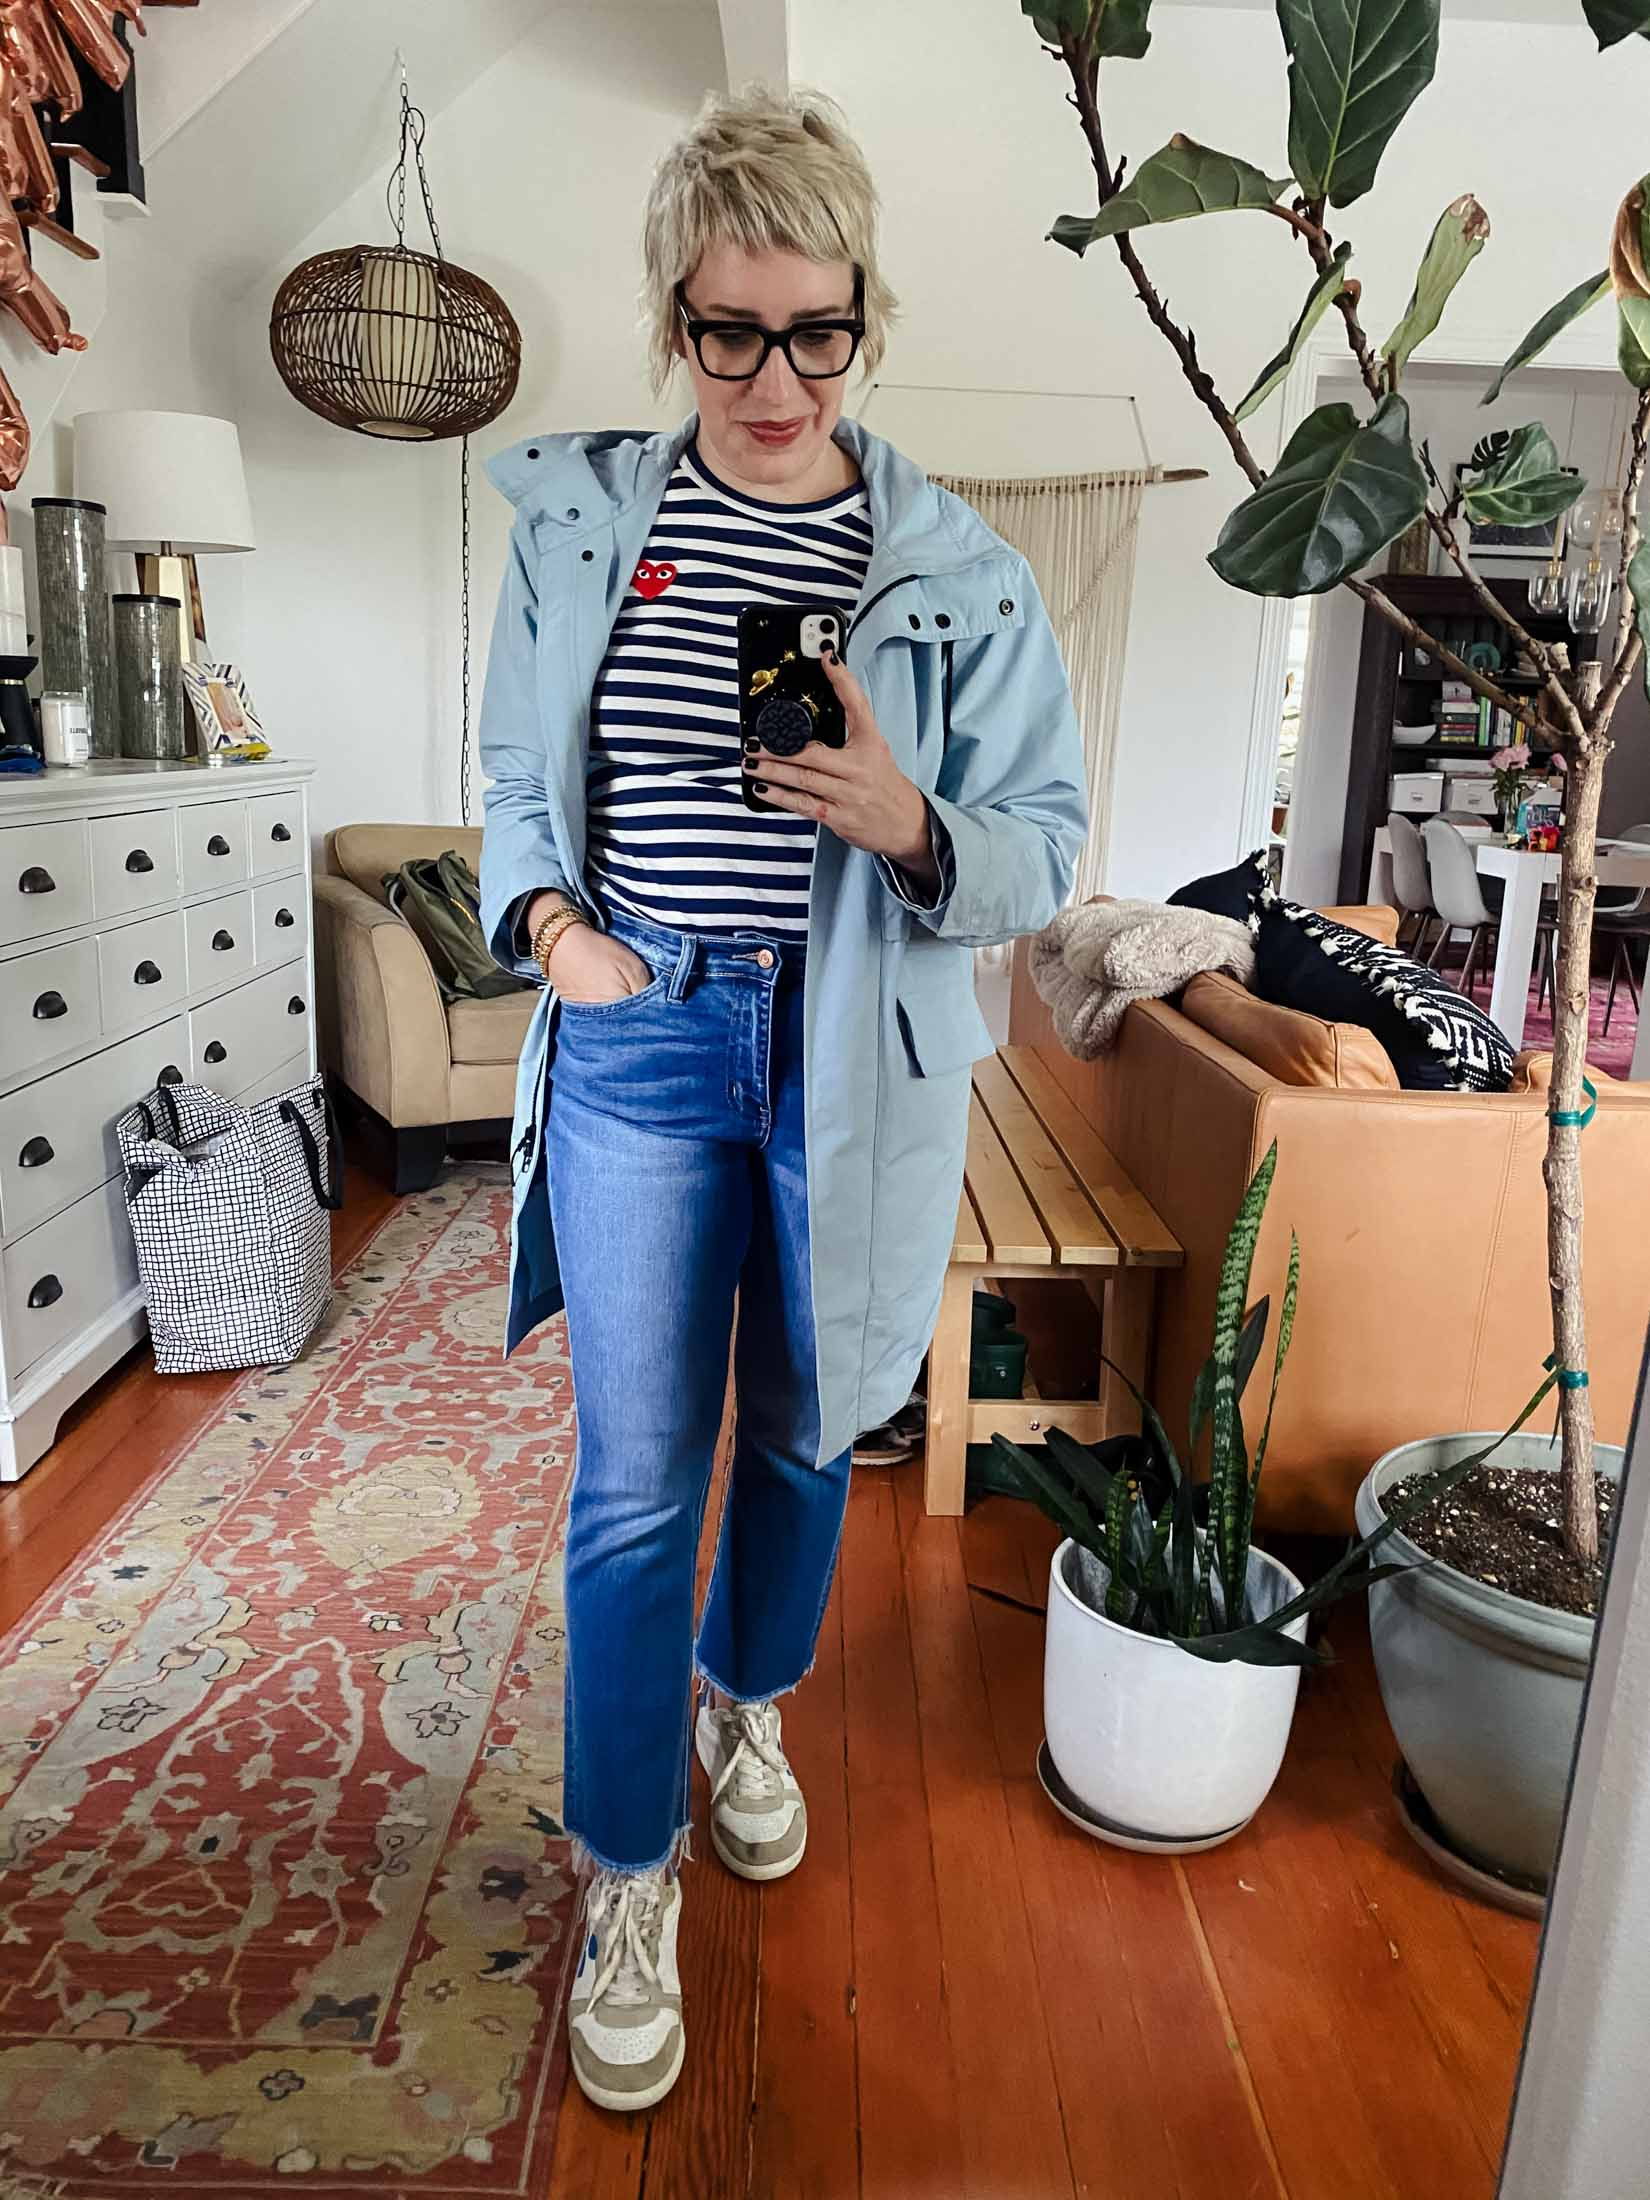 To climb out of this style rut, we're looking at classic striped tees, statement sweatshirts & our forever favs: white sneakers retro vibes.